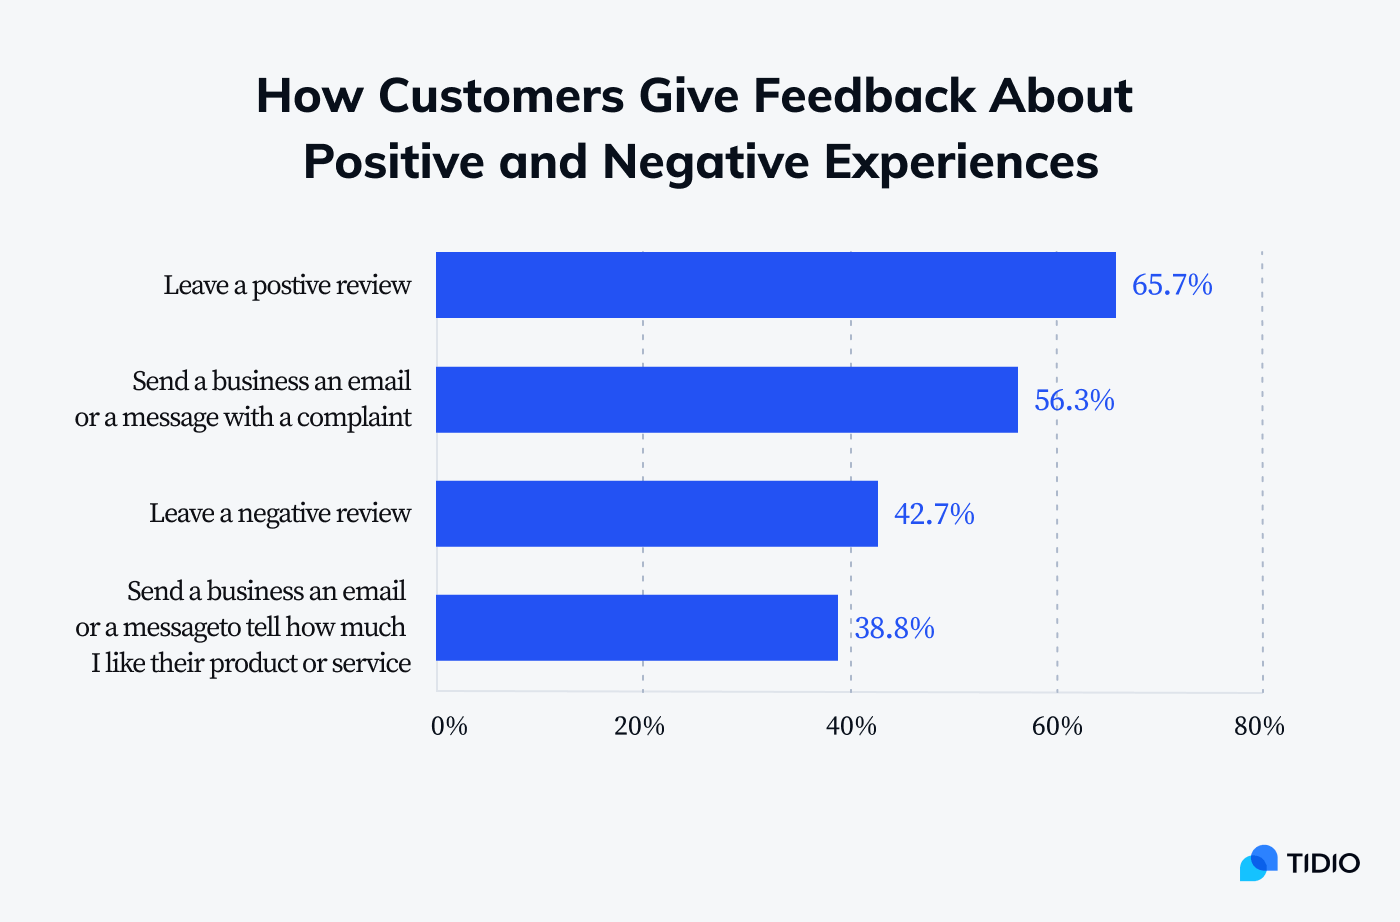 How customers give feedback about positive and negative experiences